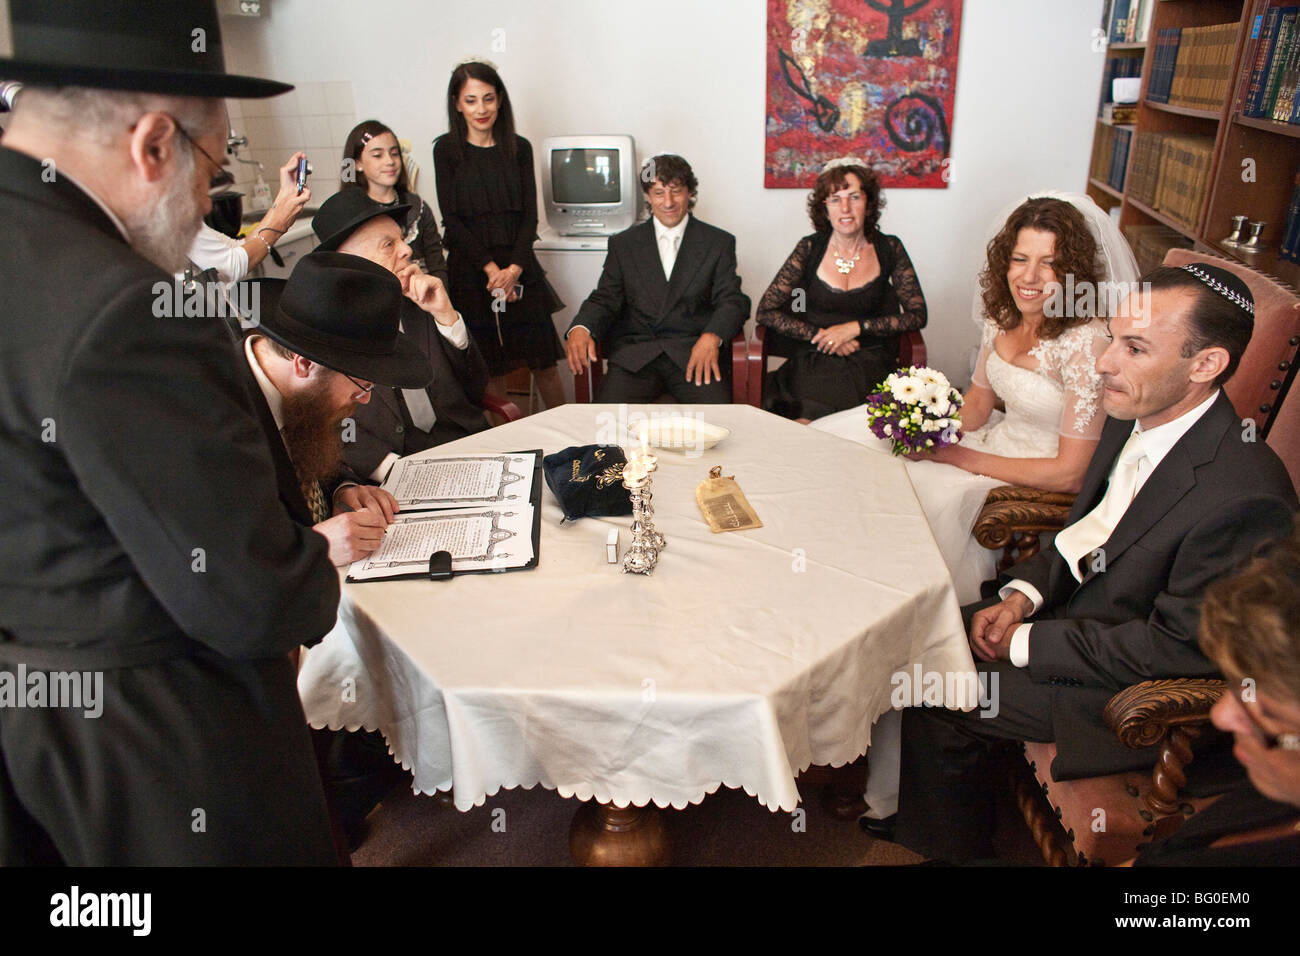 Netherlands. Groningen. Jewish wedding of Michael and Natasja Frank in the synagogue of Groningen. - Stock Image